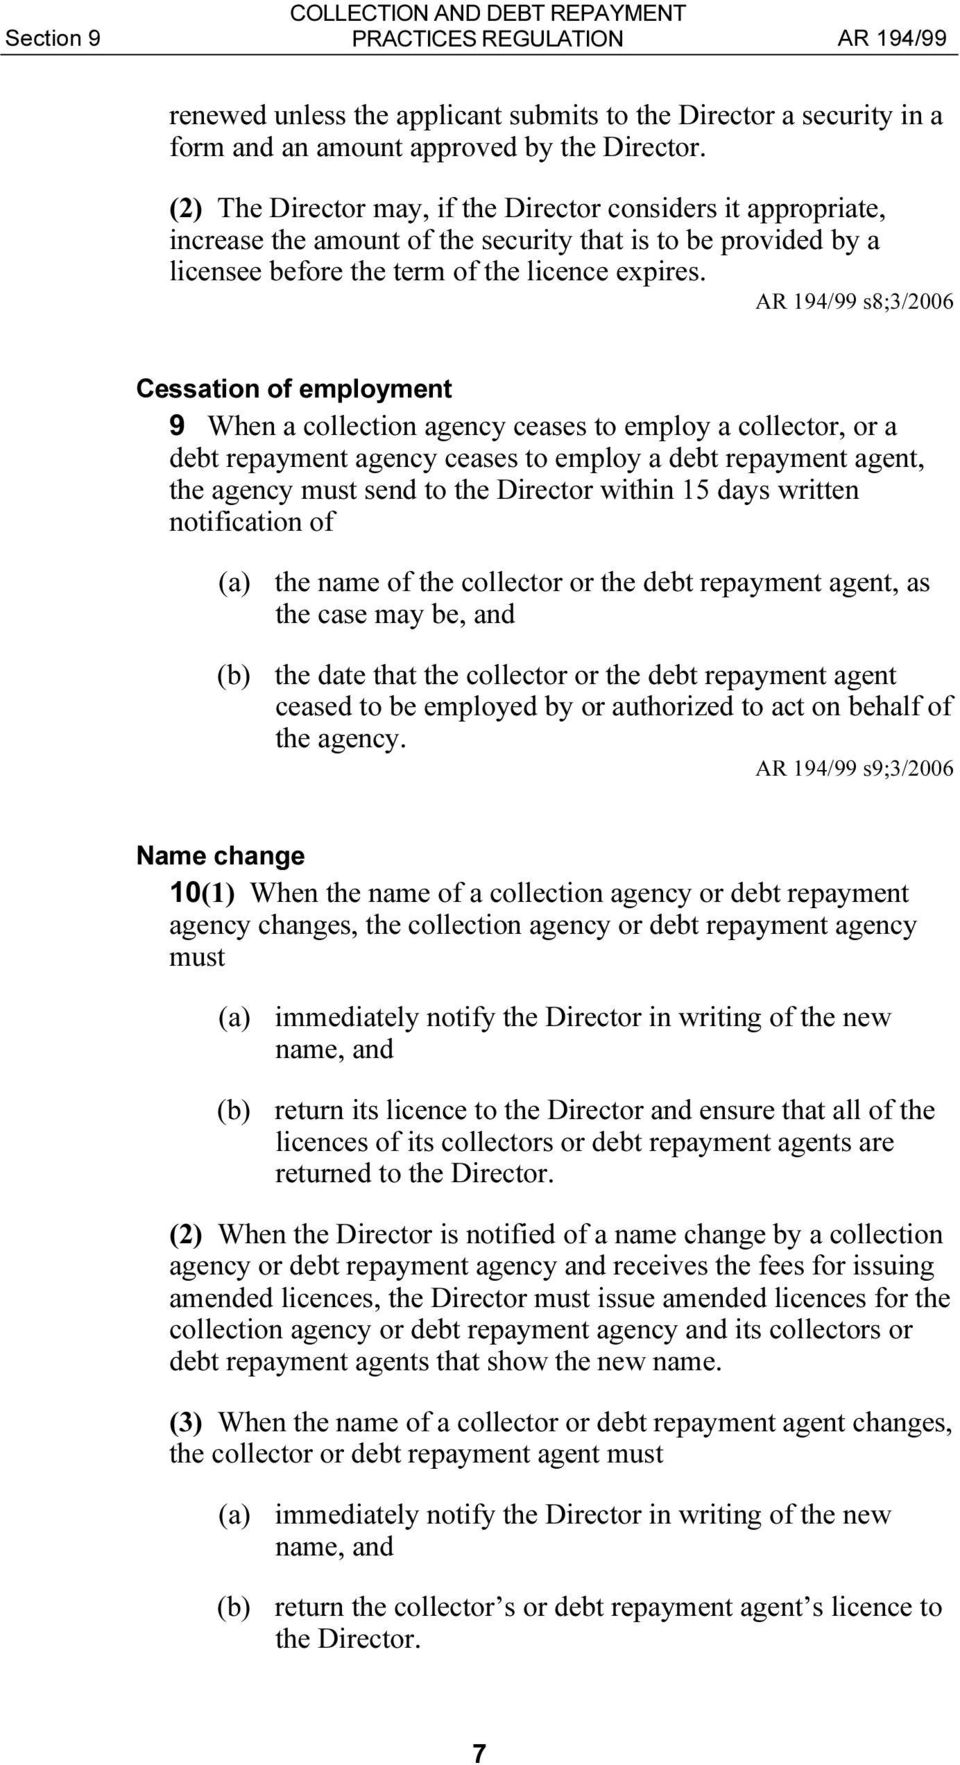 s8;3/2006 Cessation of employment 9 When a collection agency ceases to employ a collector, or a debt repayment agency ceases to employ a debt repayment agent, the agency must send to the Director